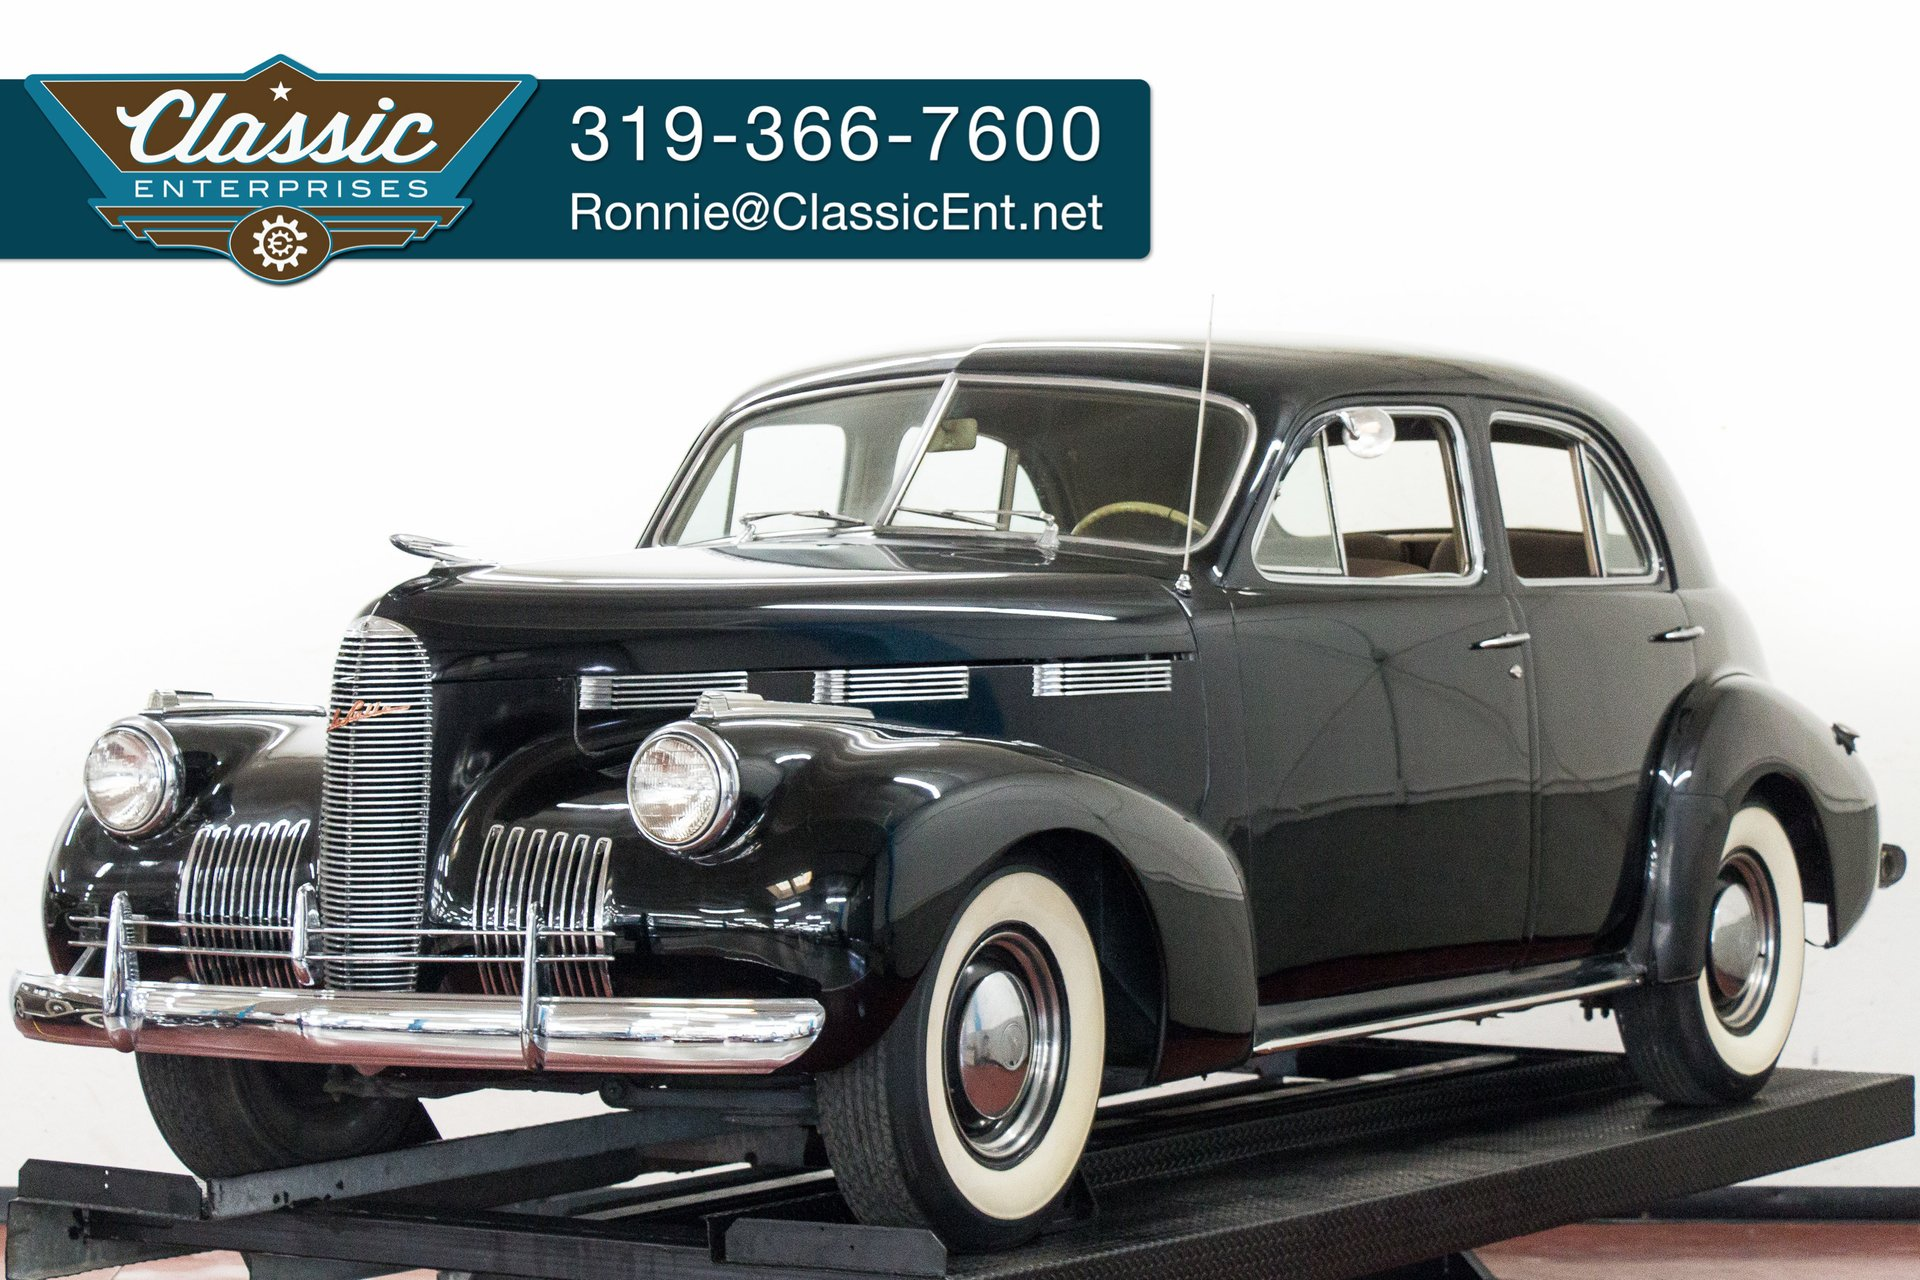 1940 Cadillac Lasalle Duffy S Classic Cars